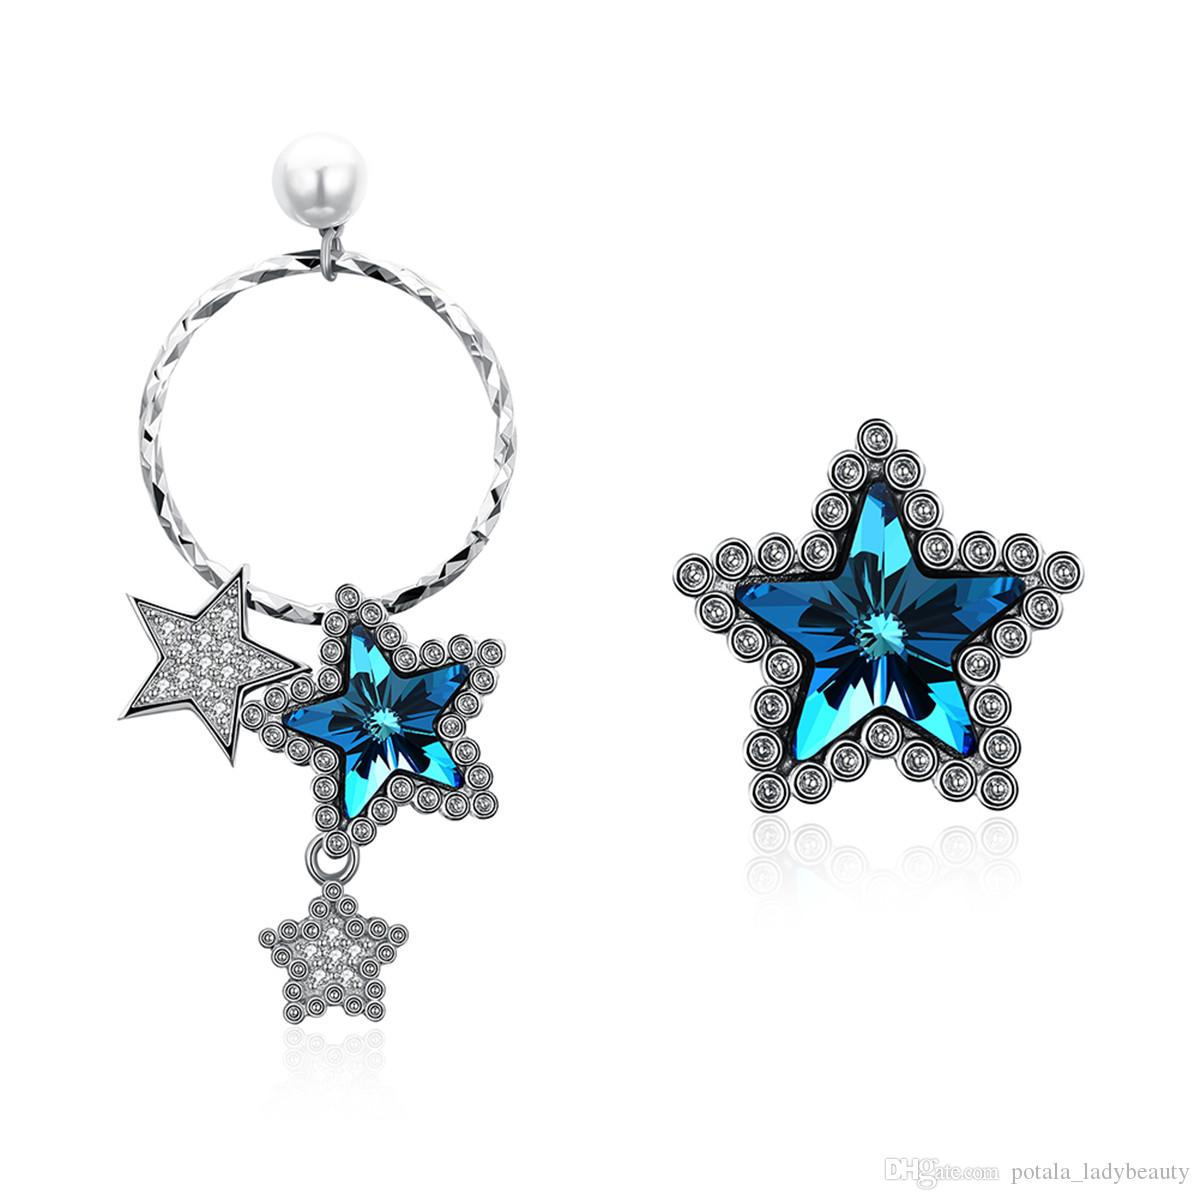 Irregular Star Dangle&Chandelier Earrings Crystal From Swarovski Elements Asymmetrical Starring S925 Sterling Silver Earring Party POTALA164